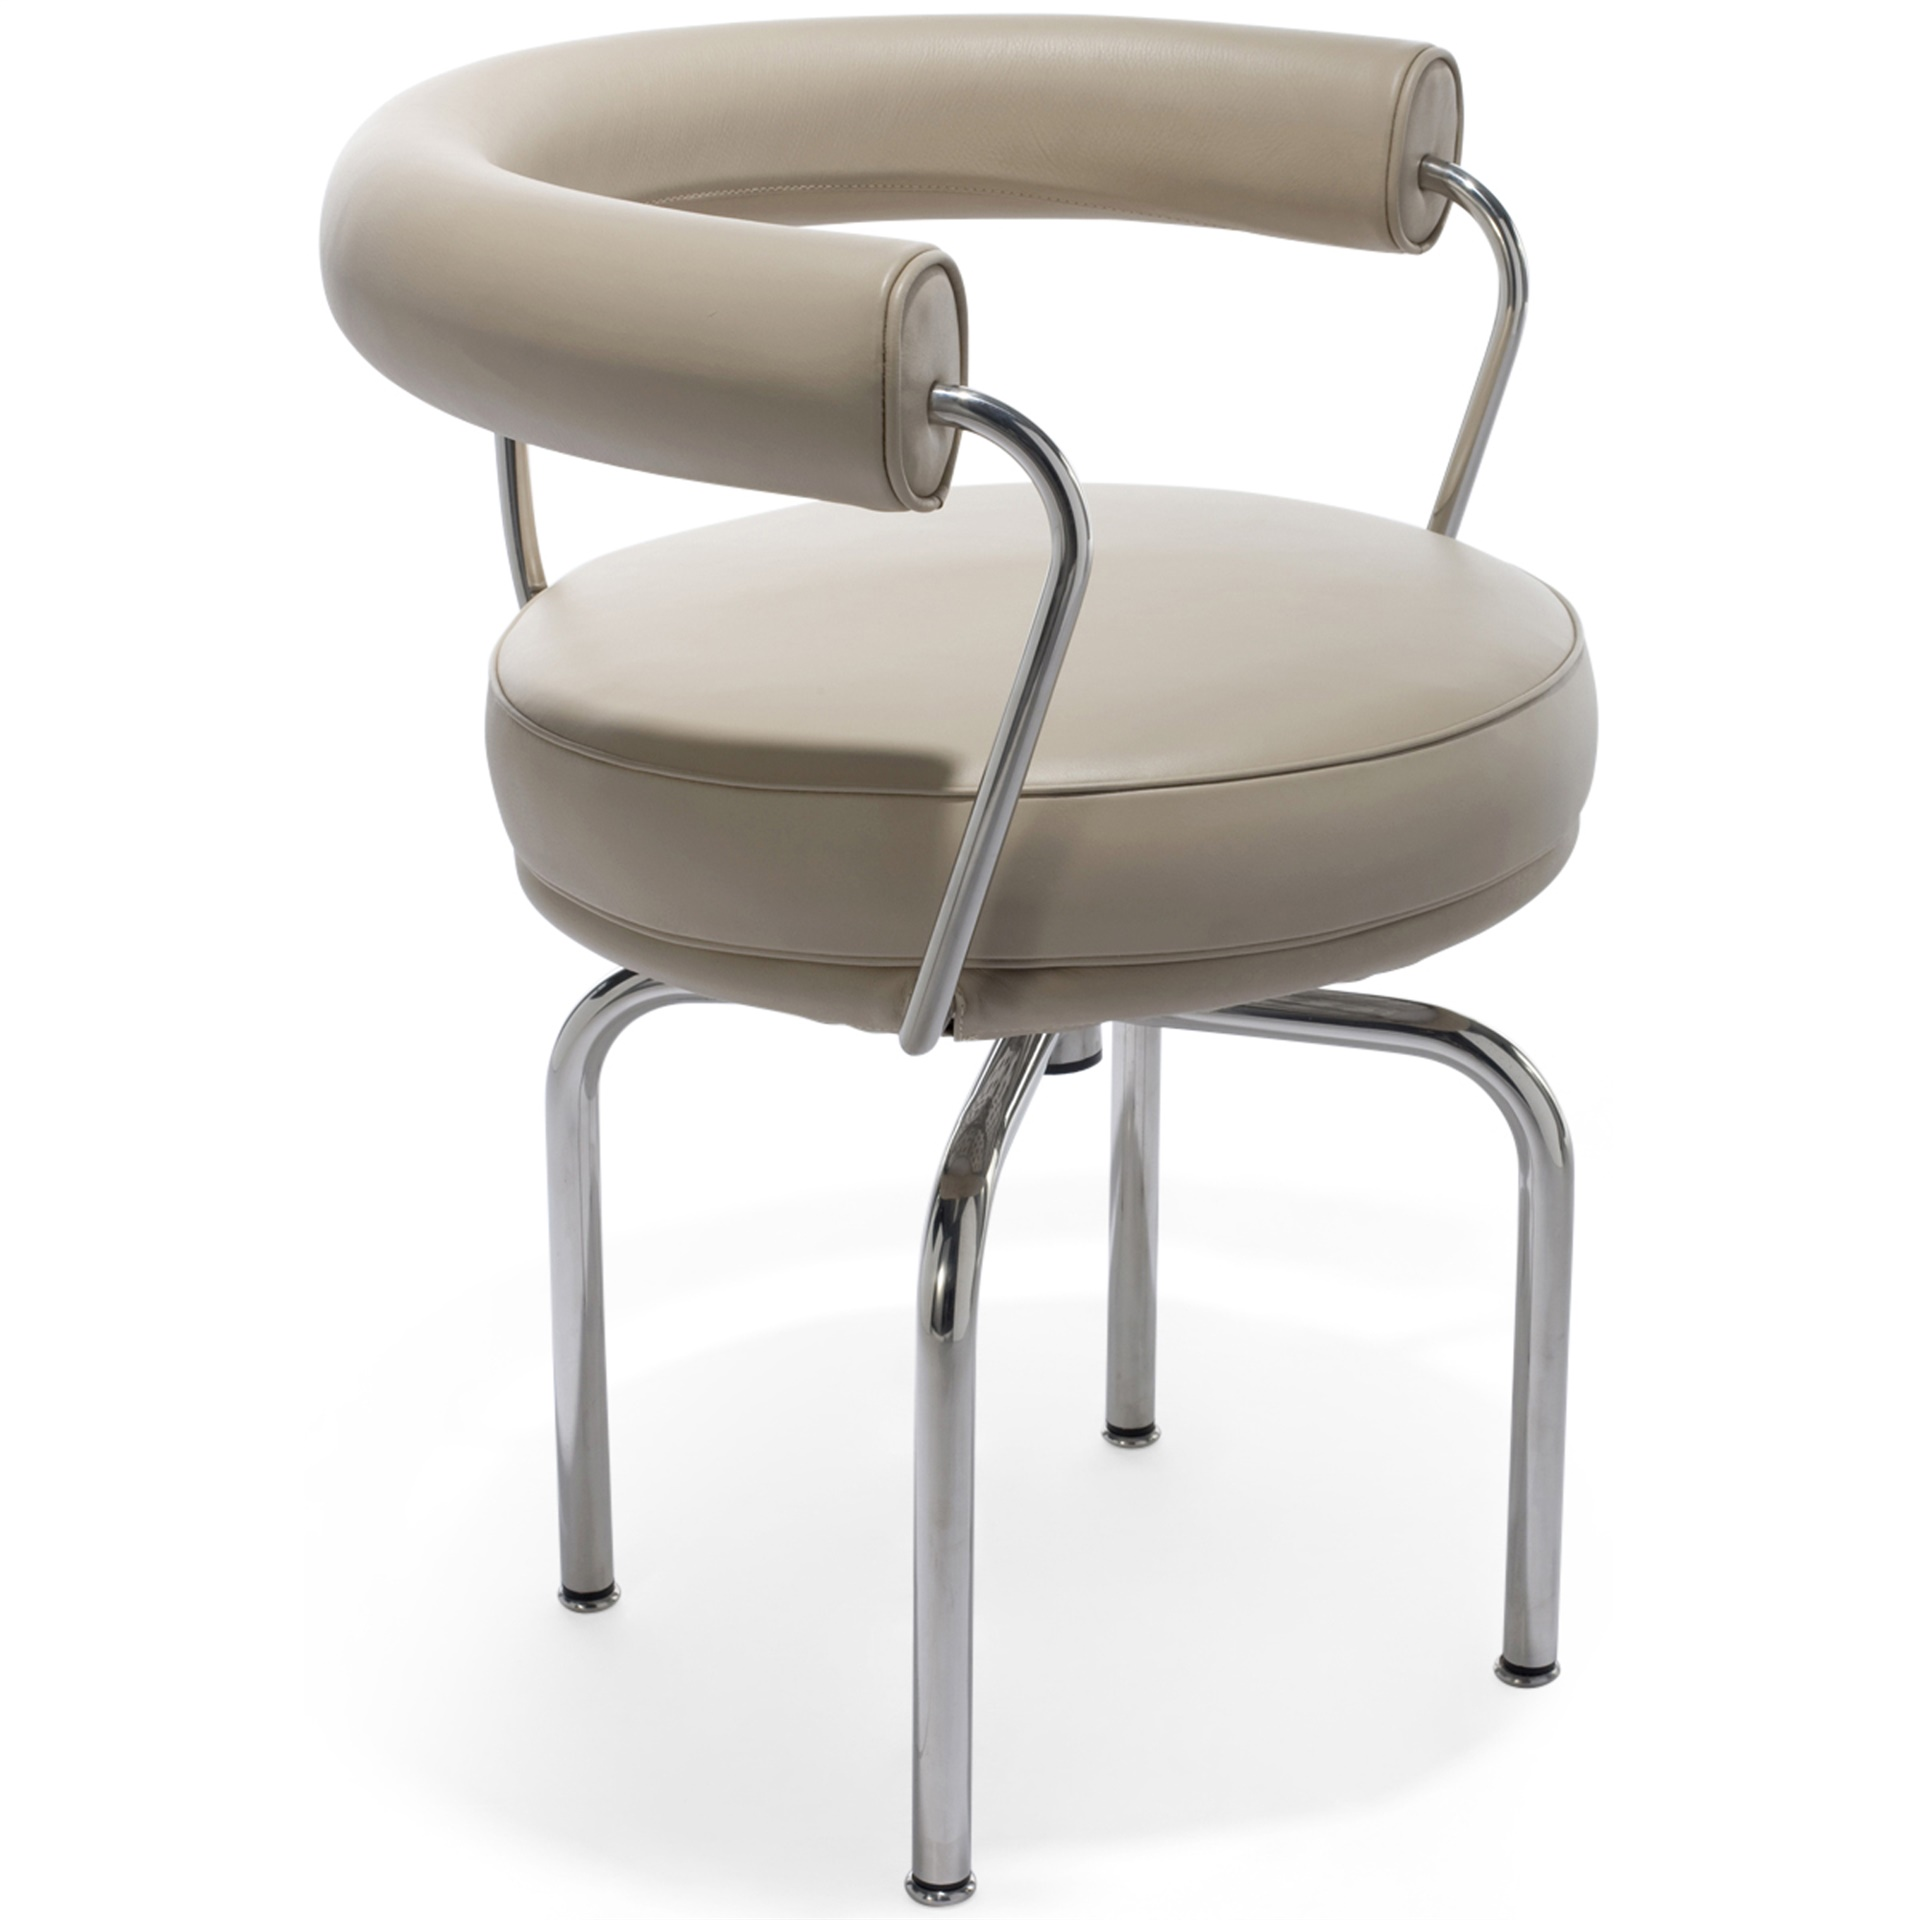 Marvelous Le Corbusier Swivel Chair Onthecornerstone Fun Painted Chair Ideas Images Onthecornerstoneorg